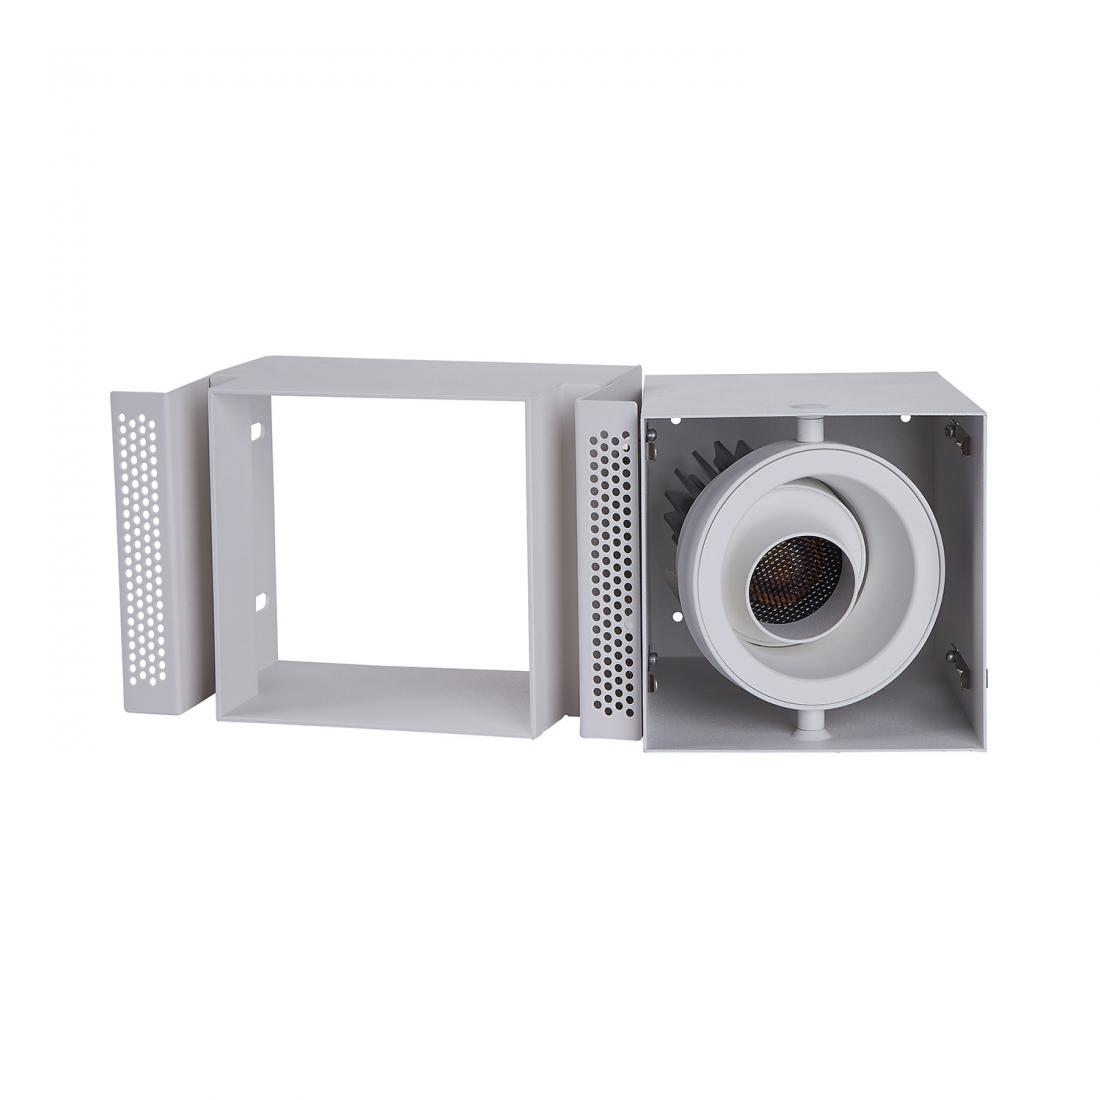 10W grille adjustable LED recessed downlight